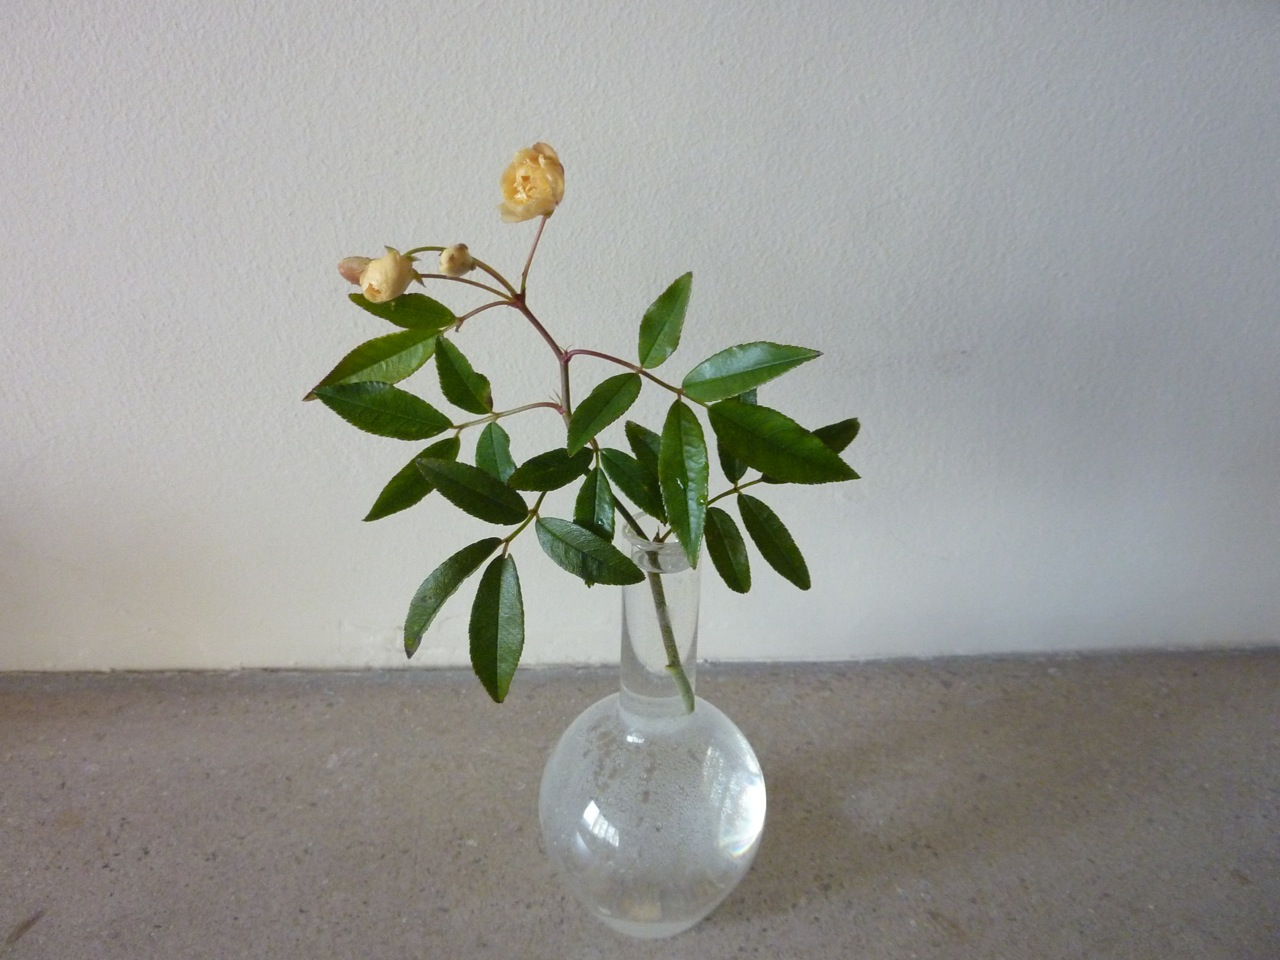 Rosa banksia lutea picked on New Year's Day